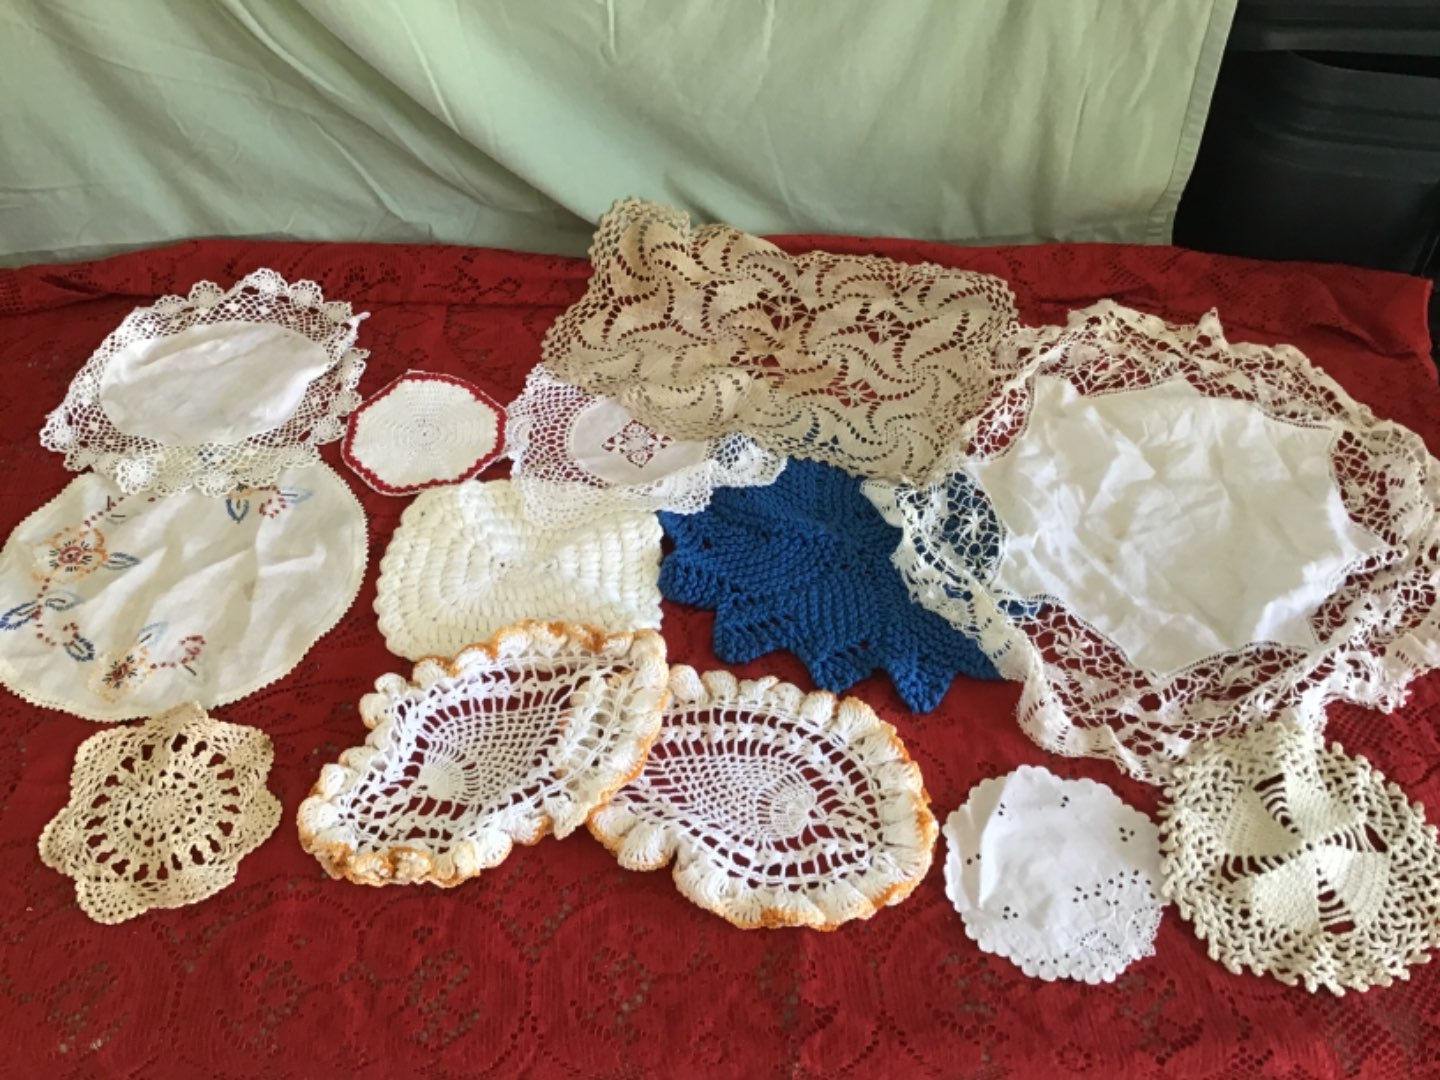 Lot # 247 More Hand-Crocheted Circular Doilies, 2 w/Pineapple Design, & some Embroidery!